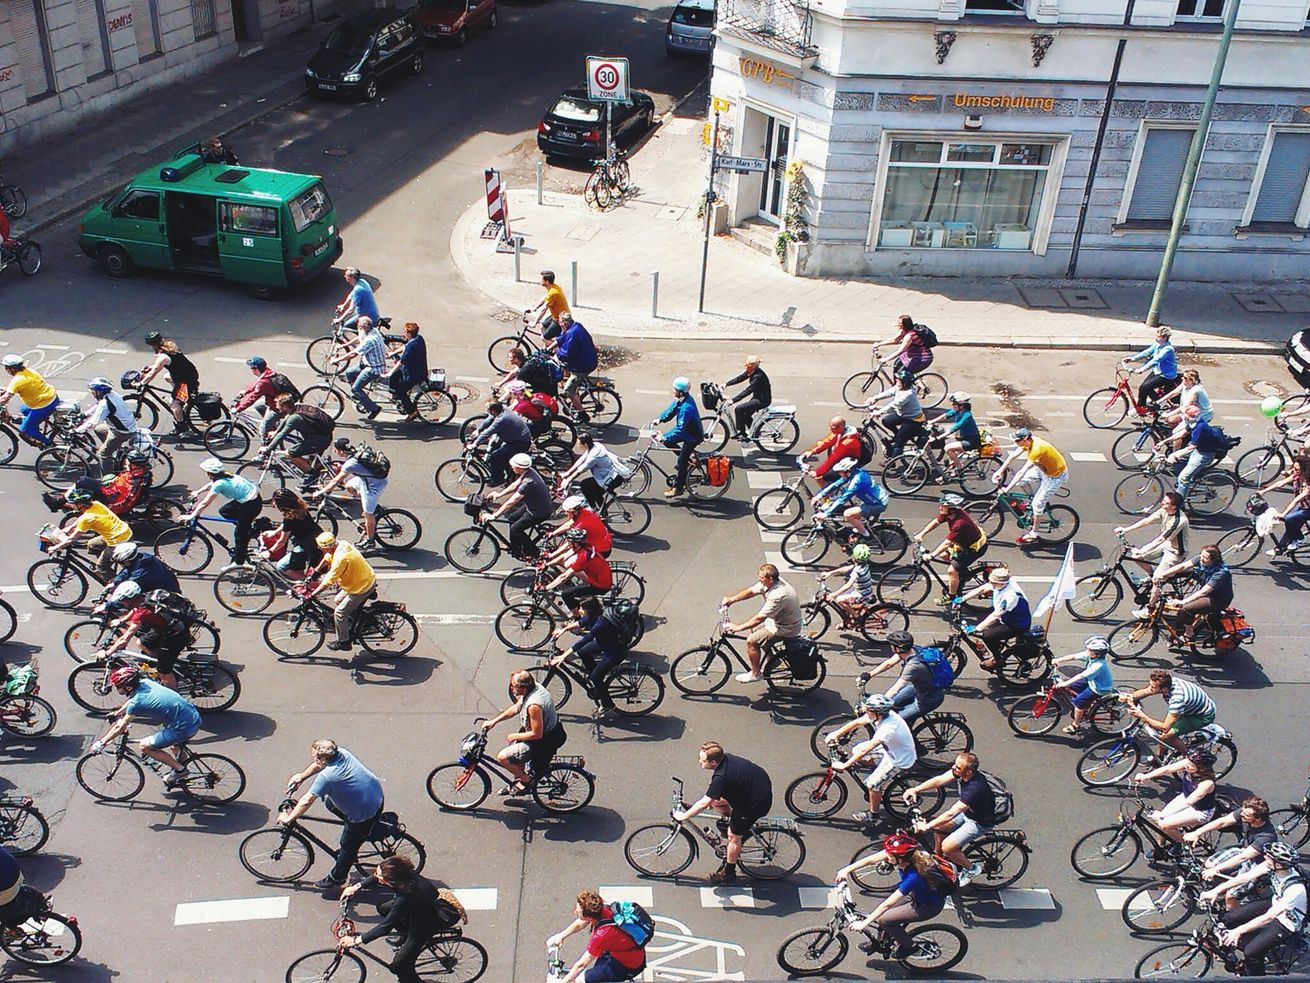 A stream of bikers rides down a city street.